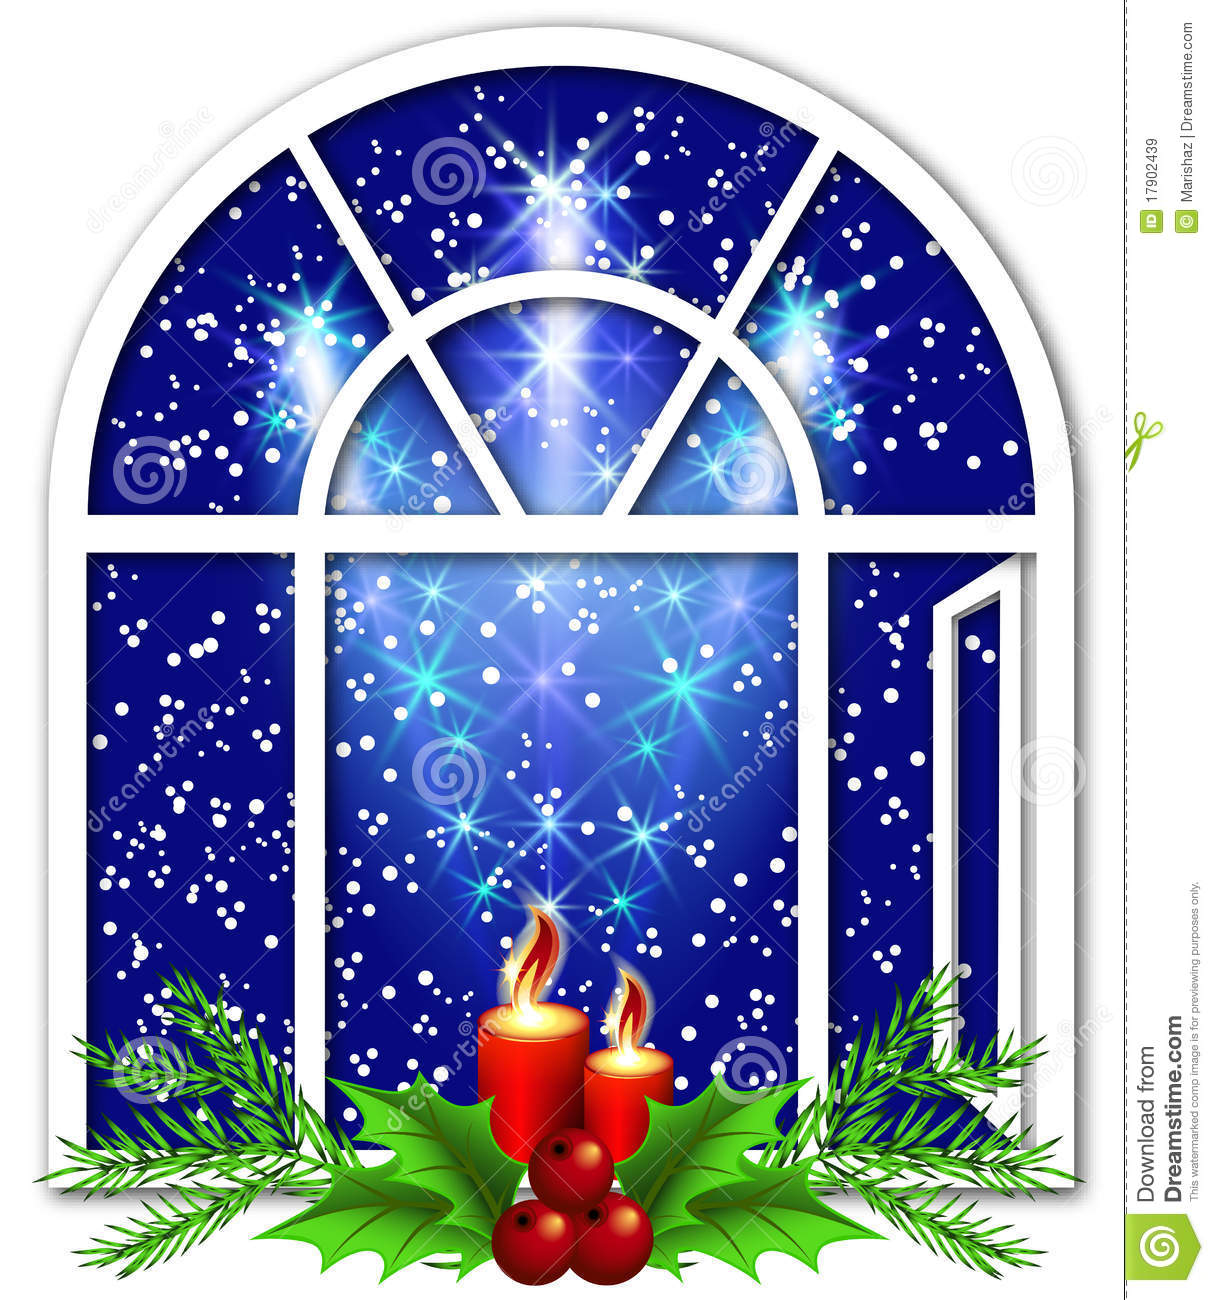 Christmas window with candles royalty free stock images image